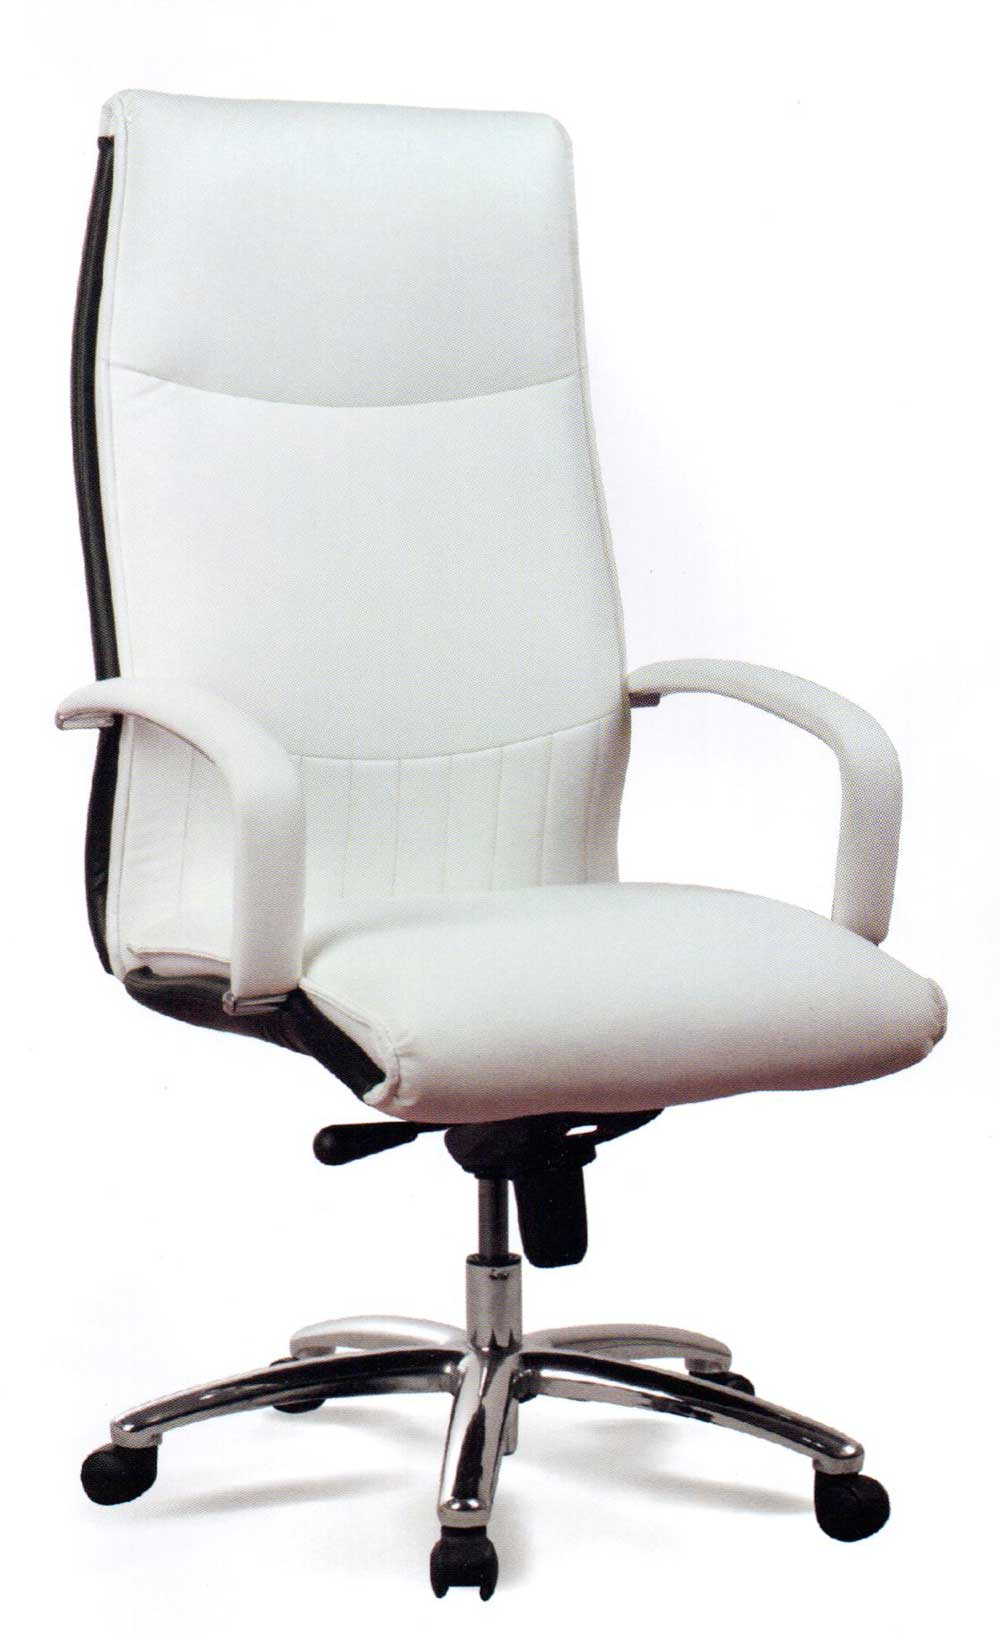 ergonomic executive white leather office